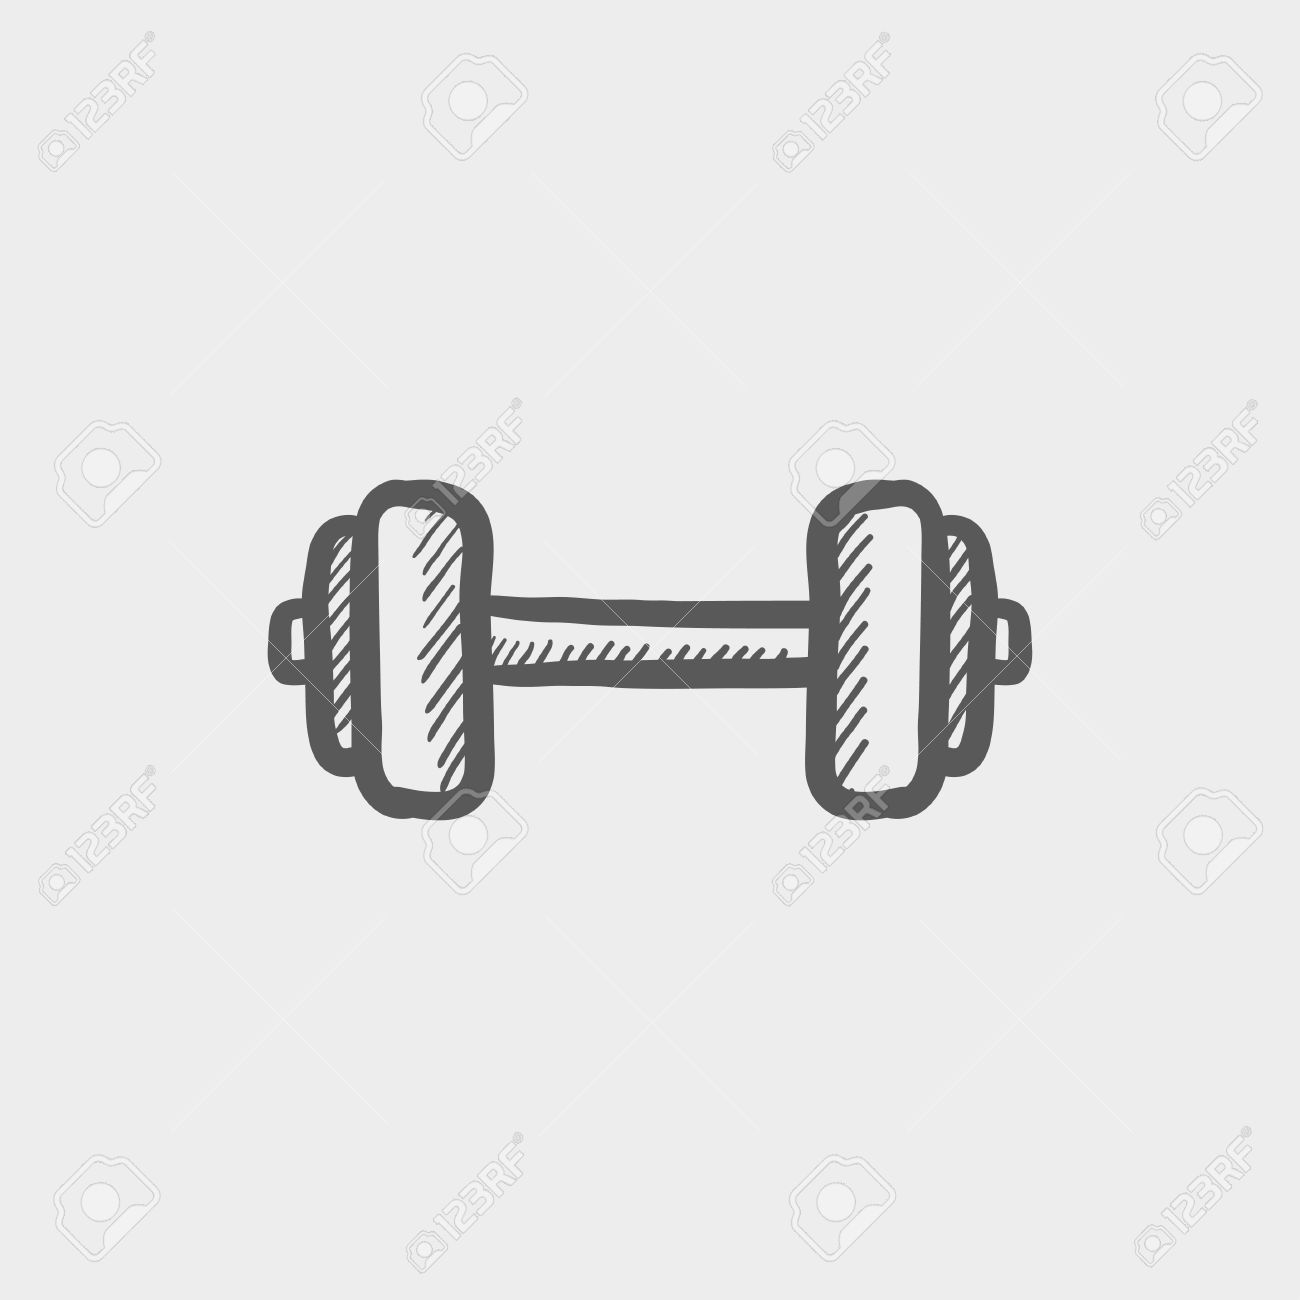 Dumbbell clipart drawing. At paintingvalley com explore